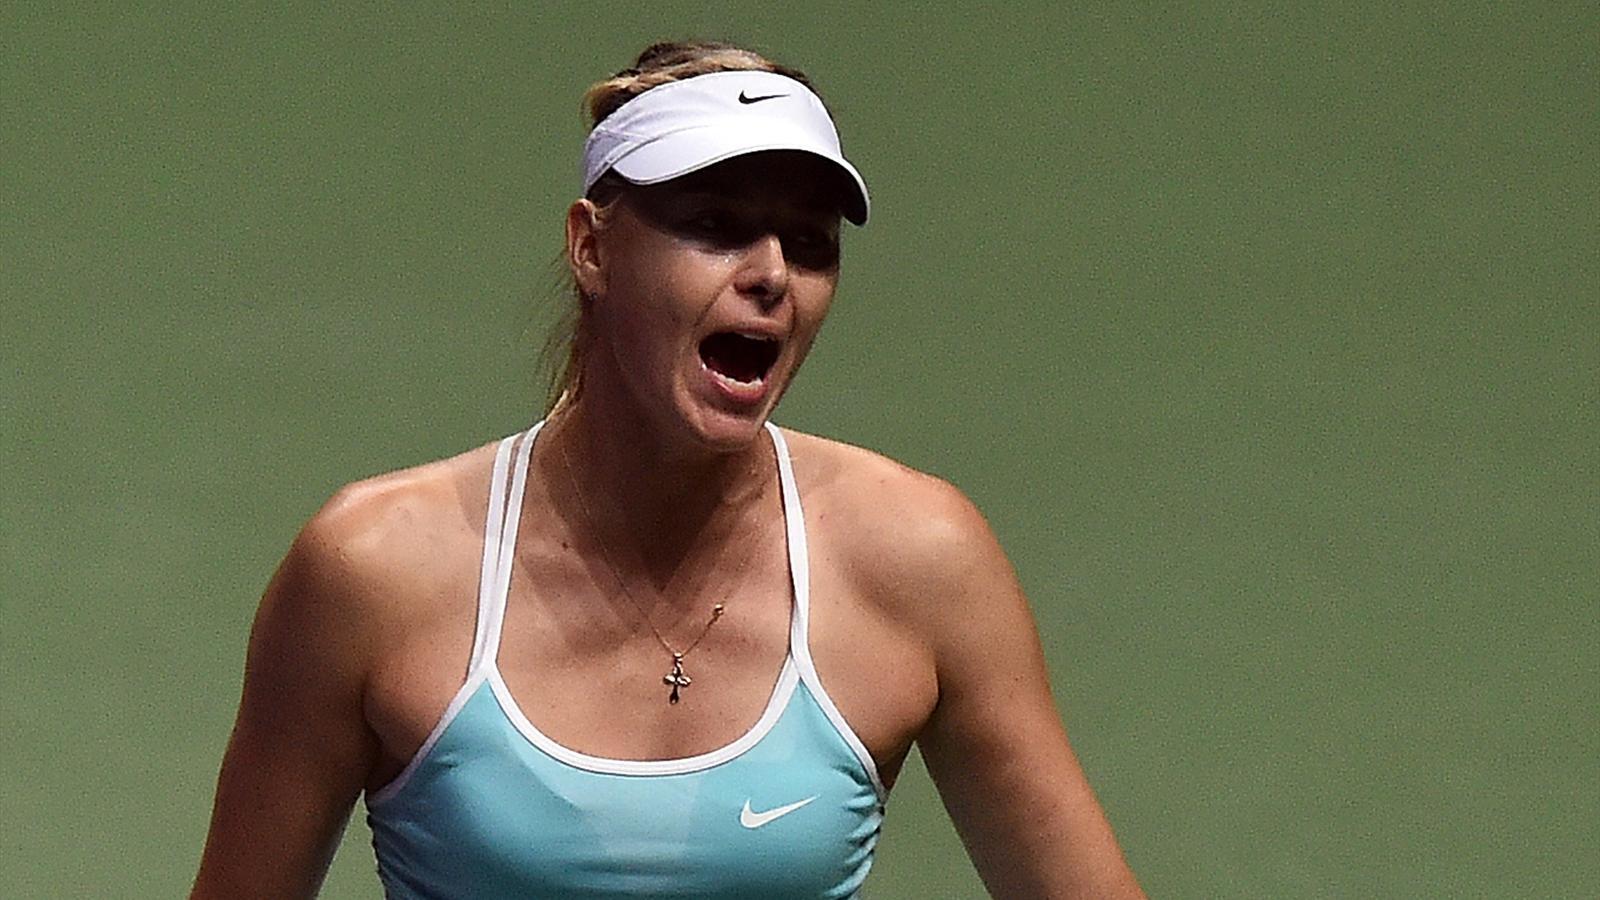 Maria Sharapova of Russia reacts to a point against Petra Kvitova of Czech Republic during their women's singles semi-final tennis match at the WTA Finals in Singapore on October 31, 2015